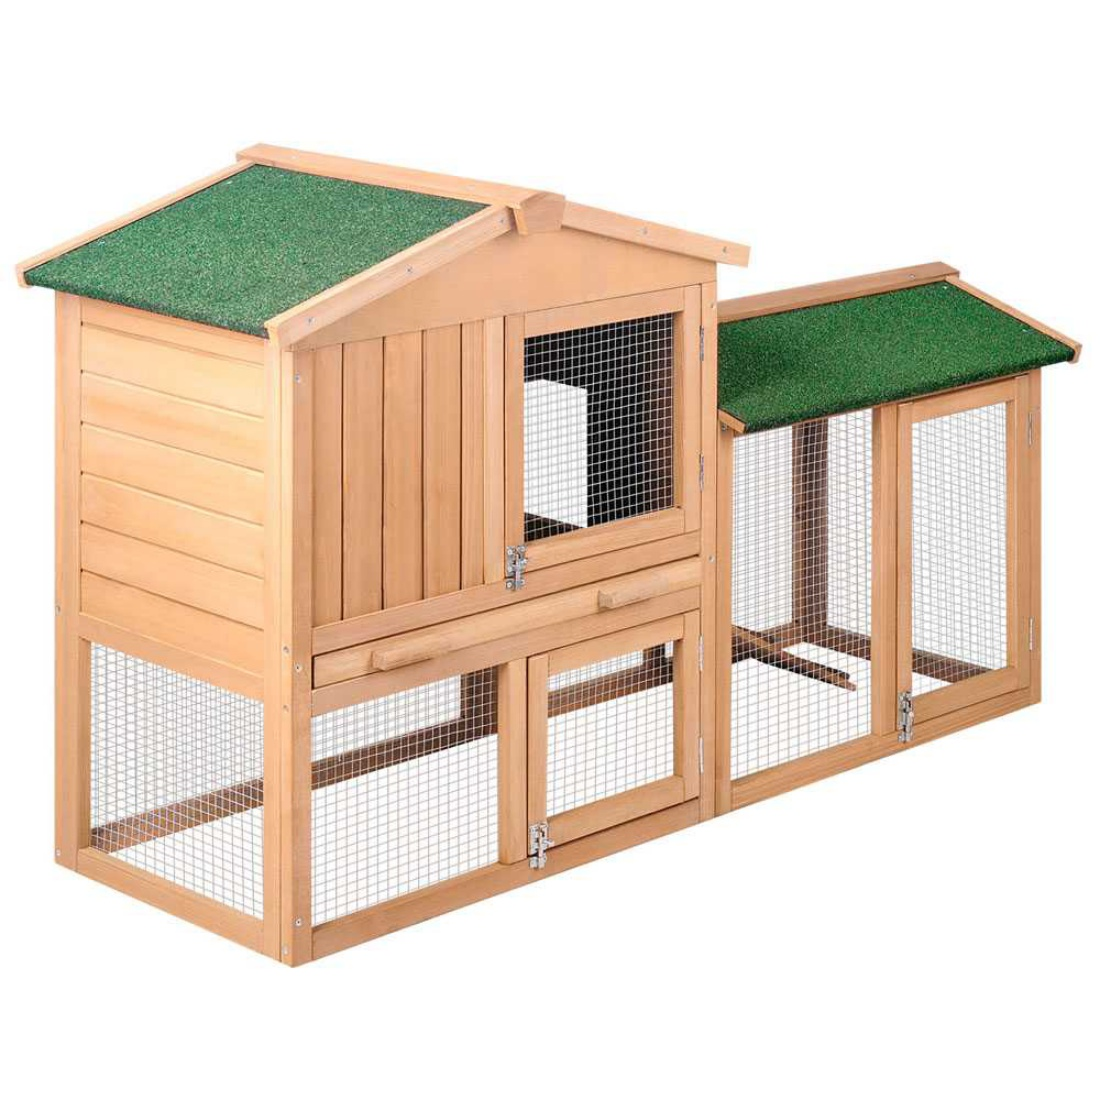 Large 2 Storey Rabbit Hutch Wooden Cage Pet Poultry Guinea Pigs Chicken Coop